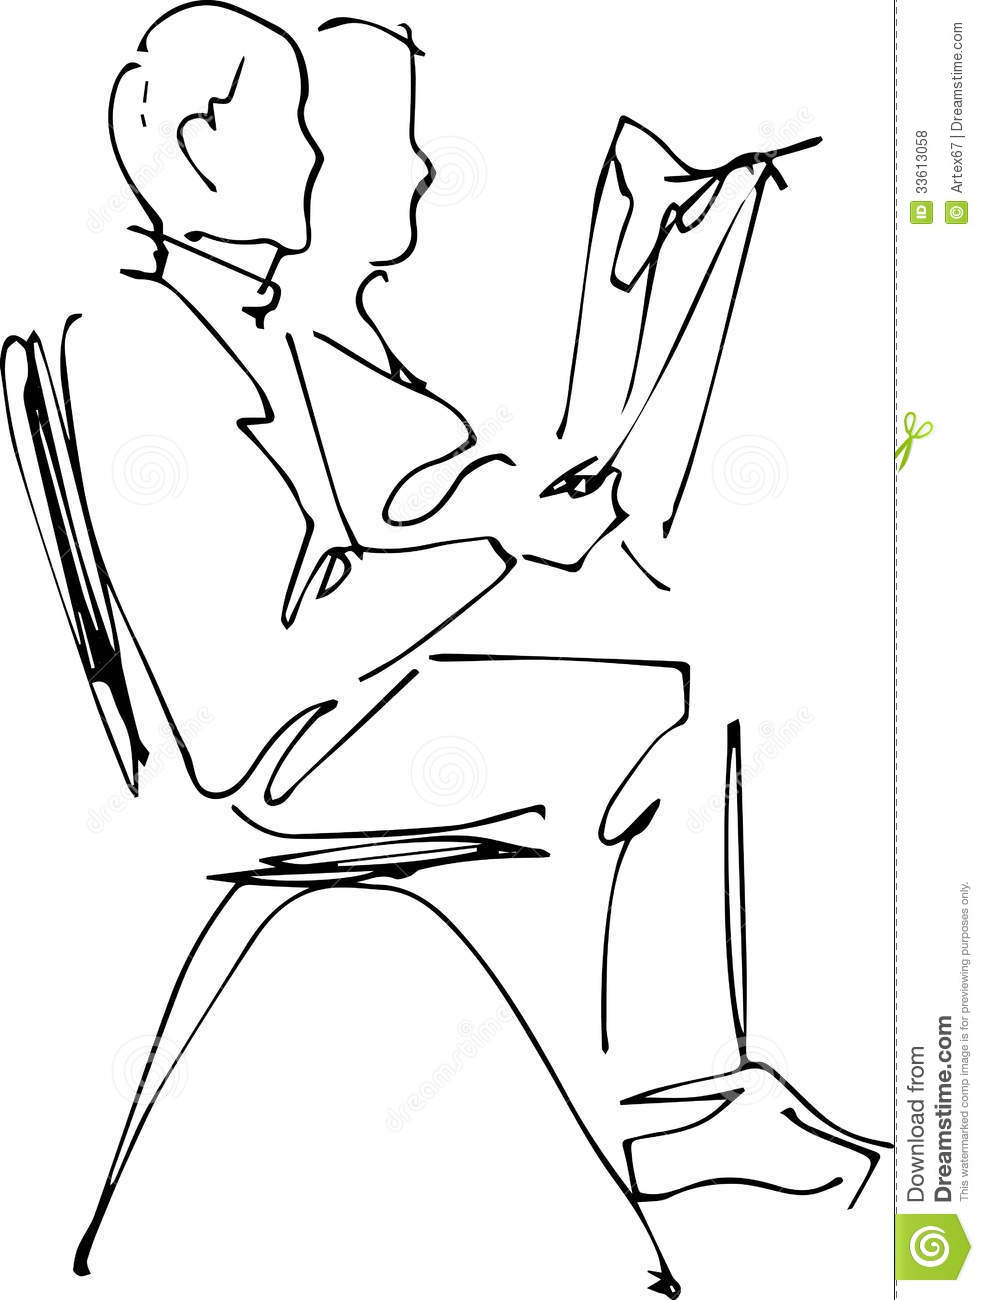 Man sitting in chair drawing - Chair Image Man Reading Sitting Paper Hands Focused Drawing